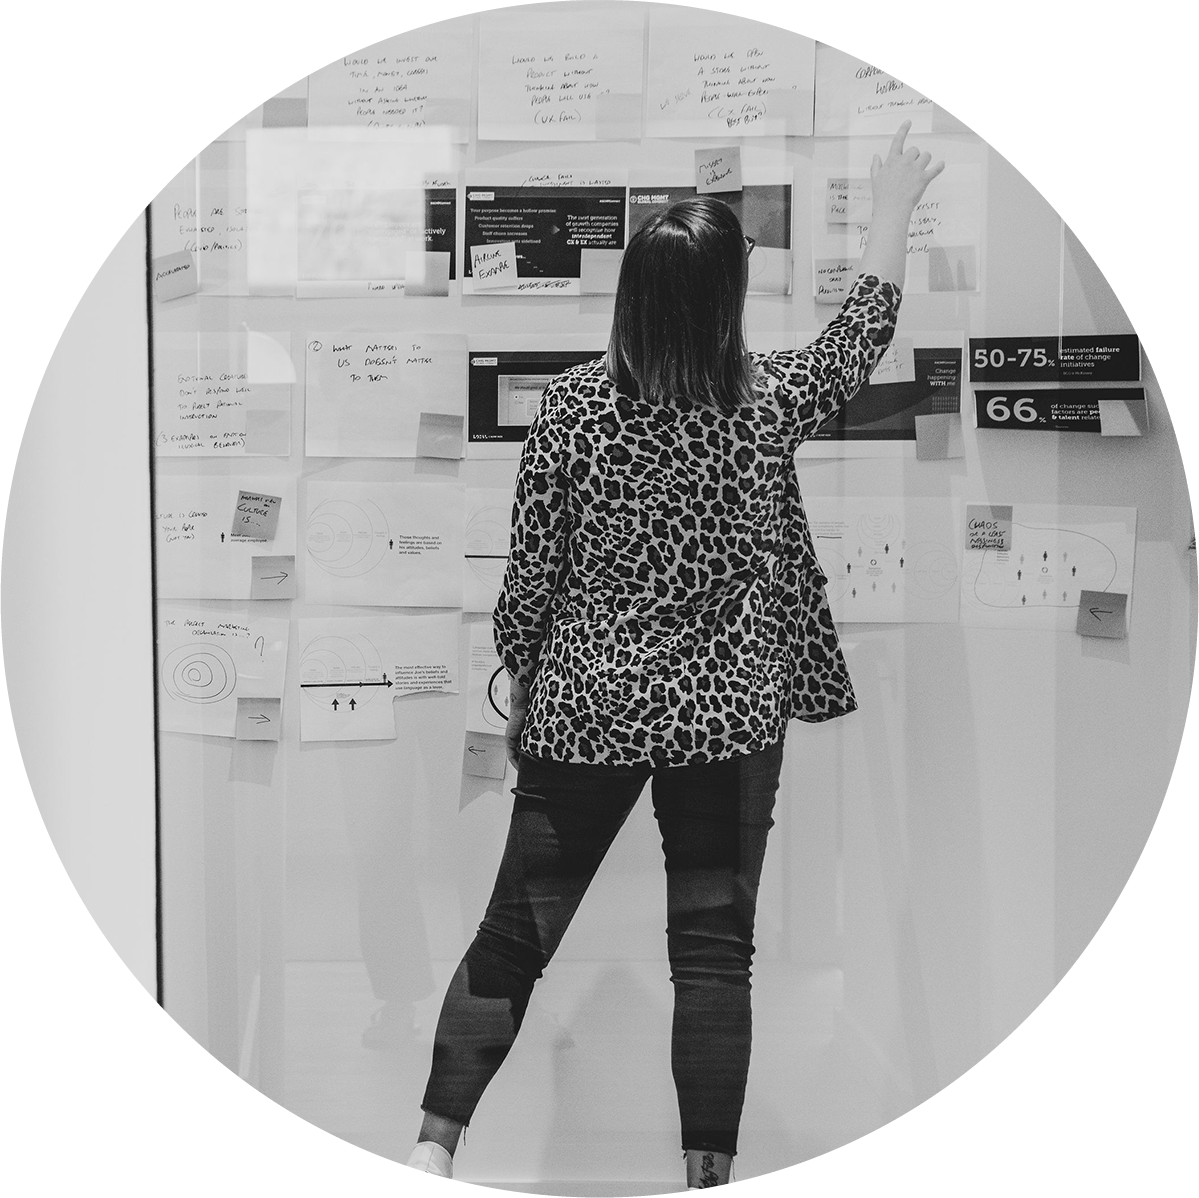 A lady in cheetah print points to a paper on a brainstorming wall covered in notes and photos